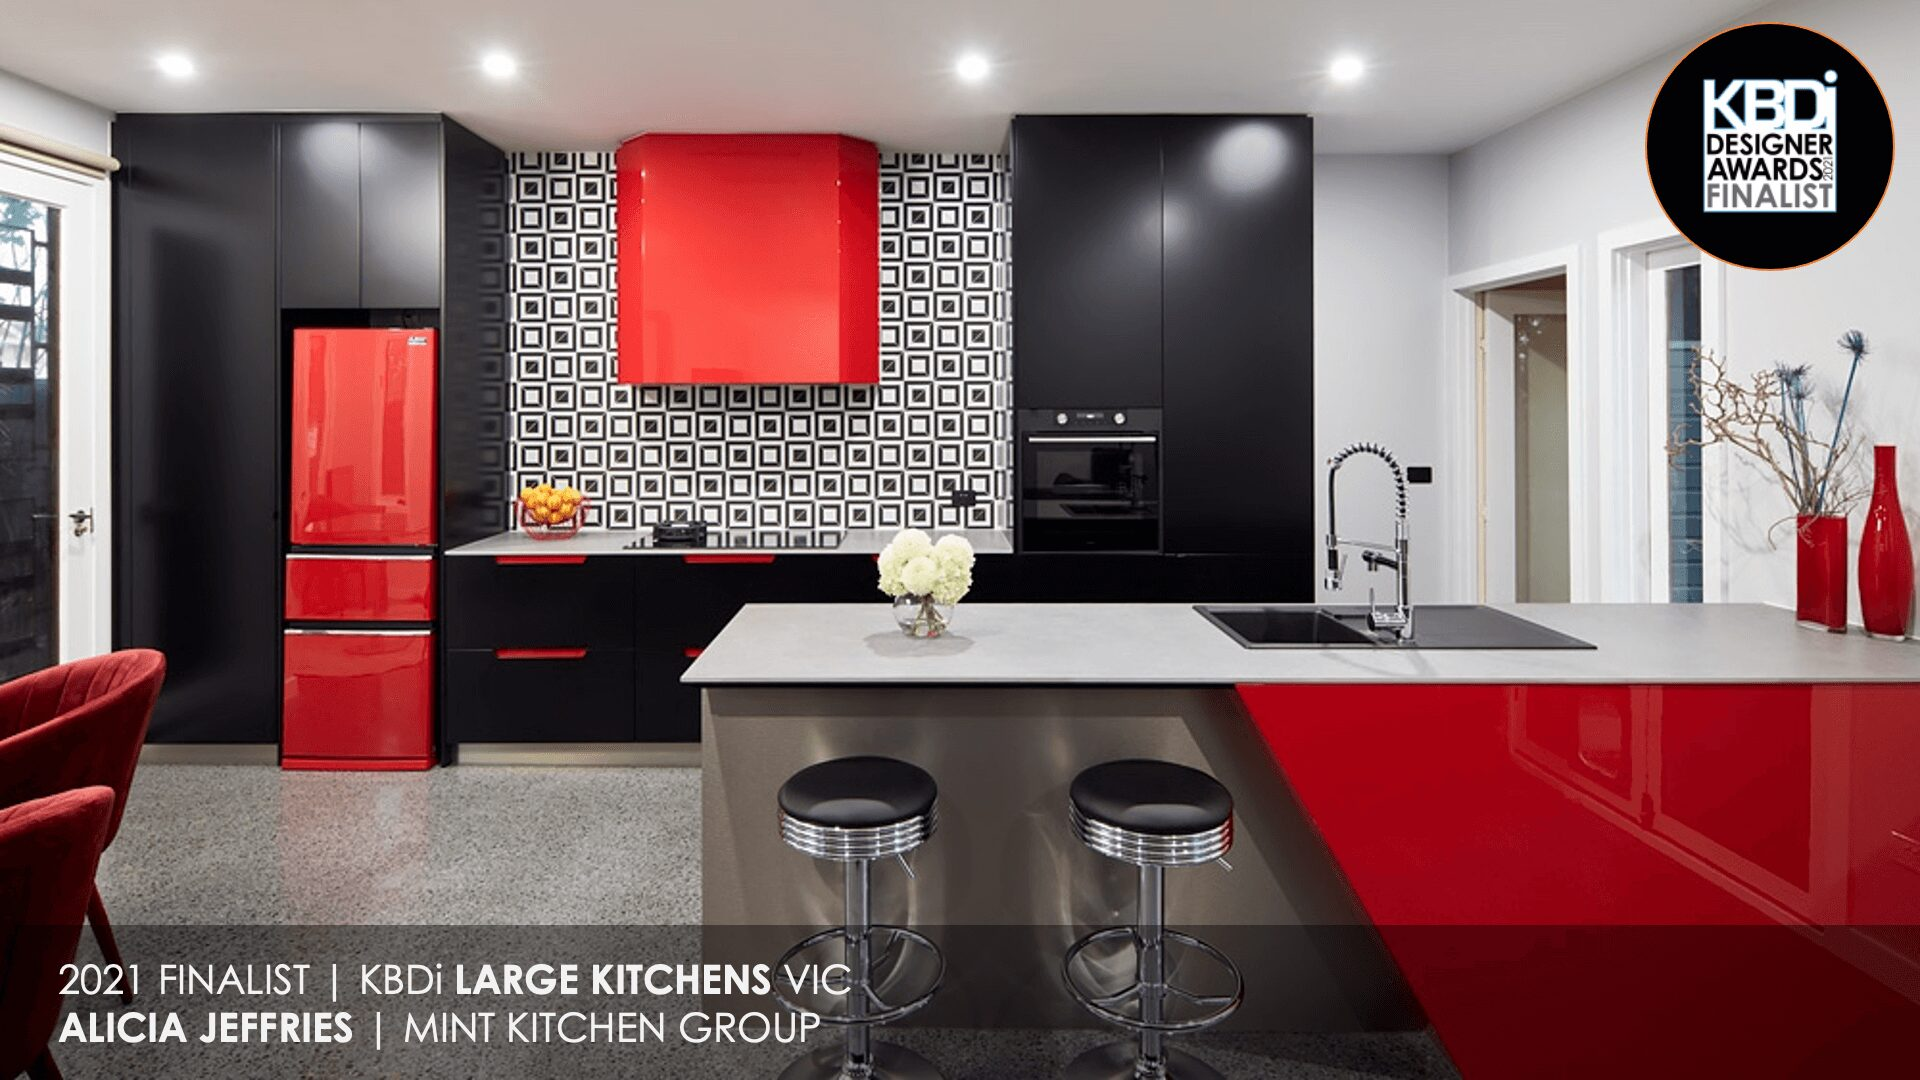 A_27_Alicia Jeffries_Large Kitchens_VIC